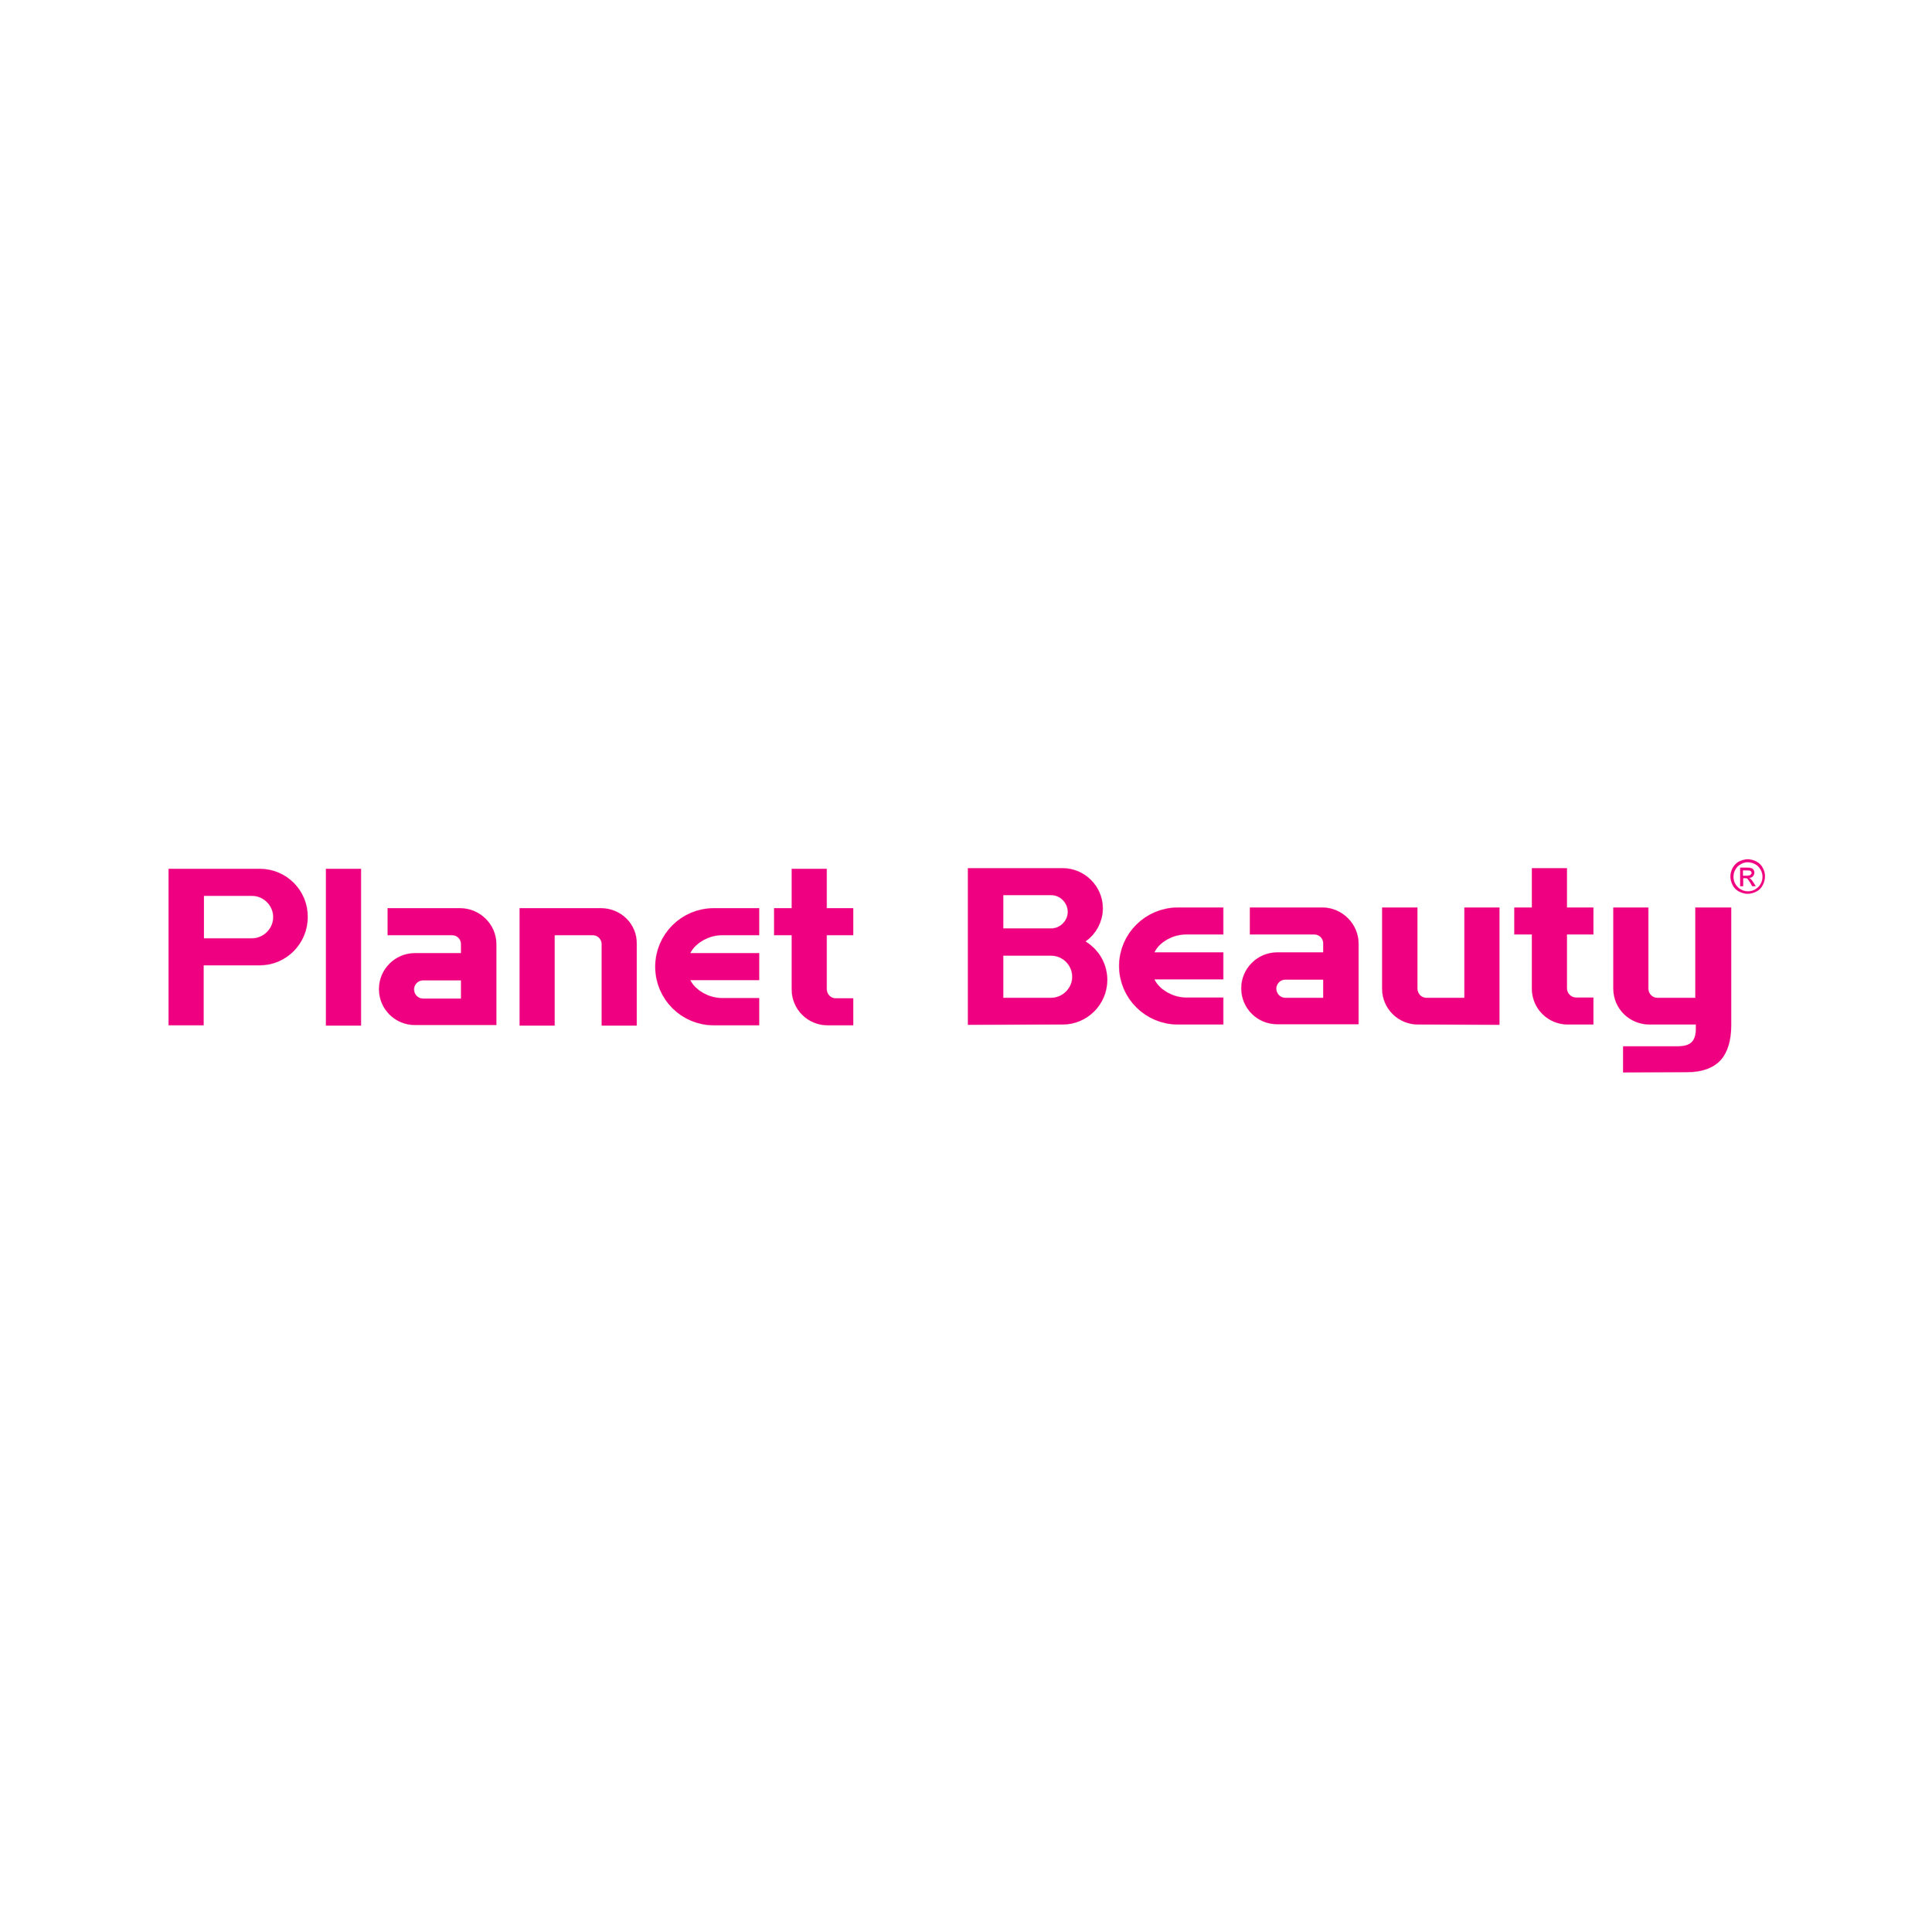 Planet Beauty - In Stores Now!